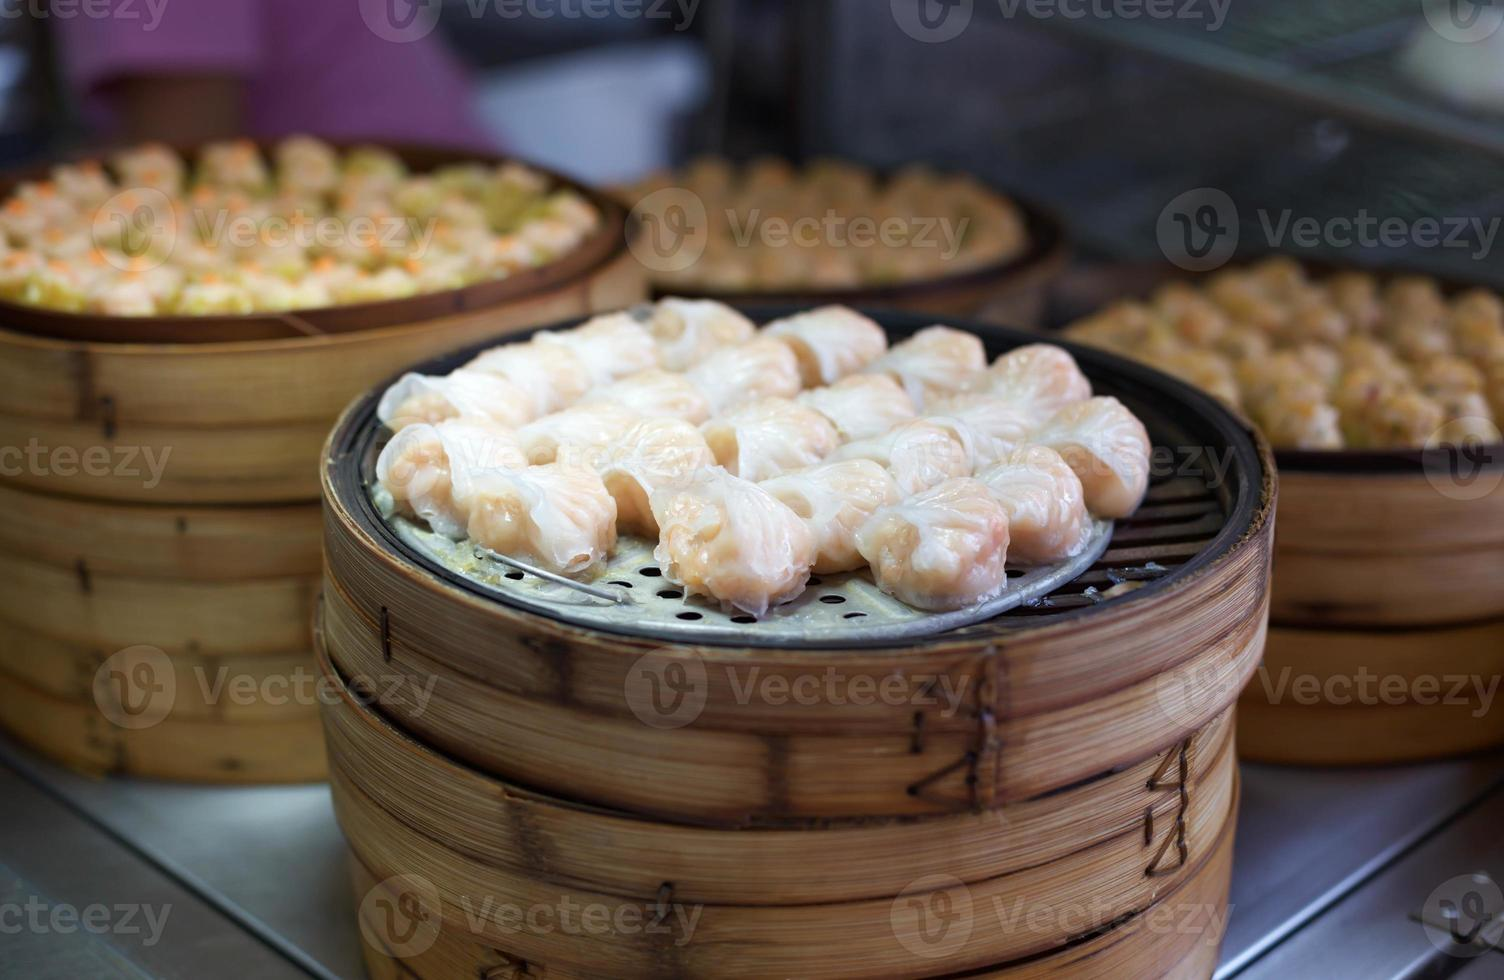 Chinees gestoomd dimsum in bamboe containers foto